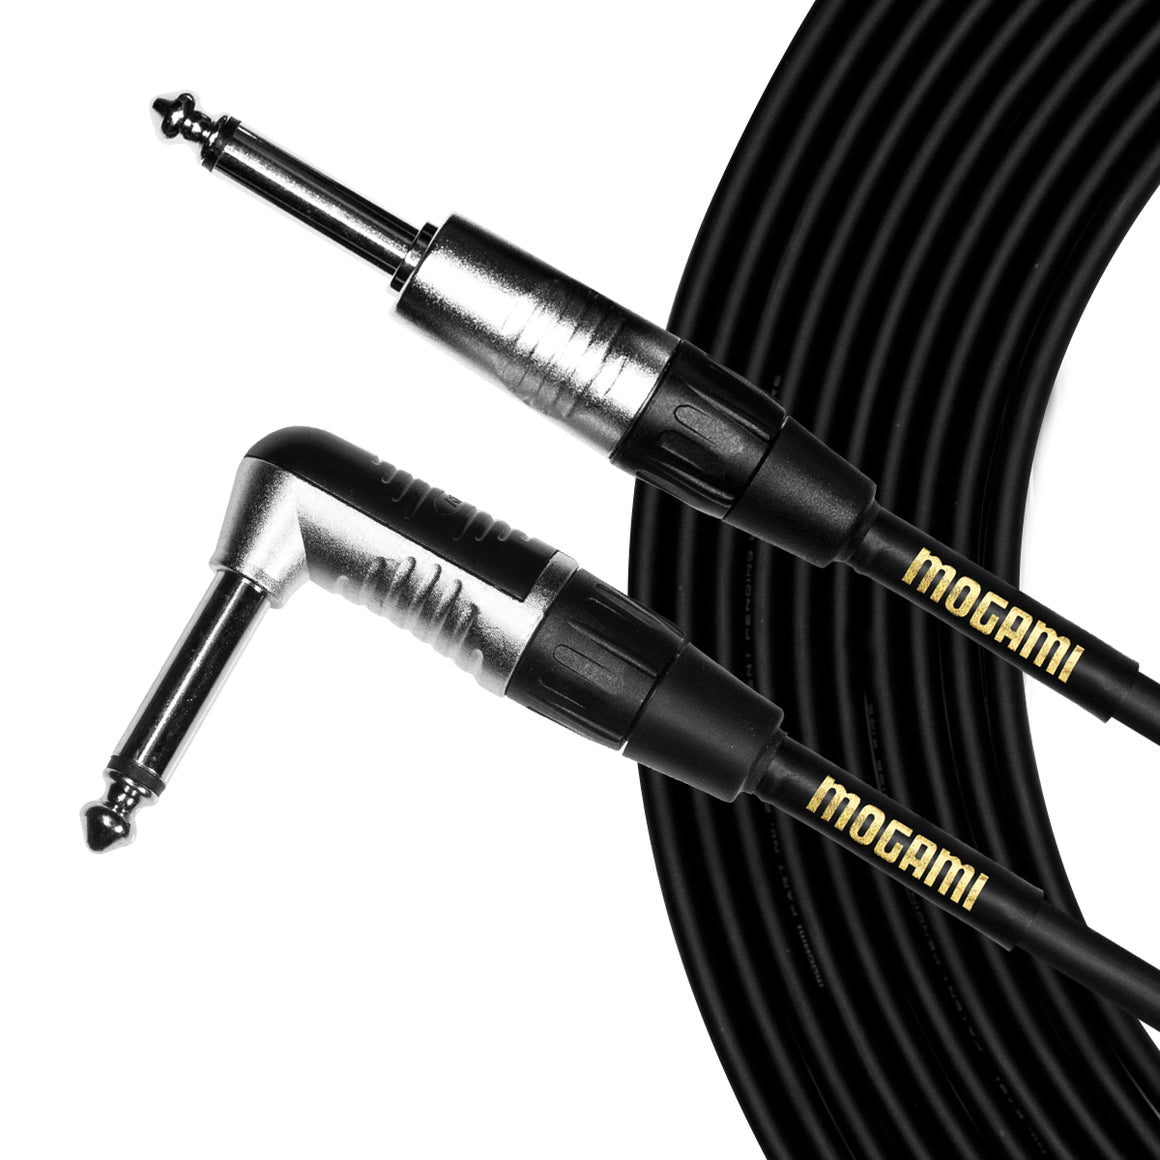 "Mogami CorePlus 1/4"" TS, 20' Instrument Cable - Right-angle to Straight"